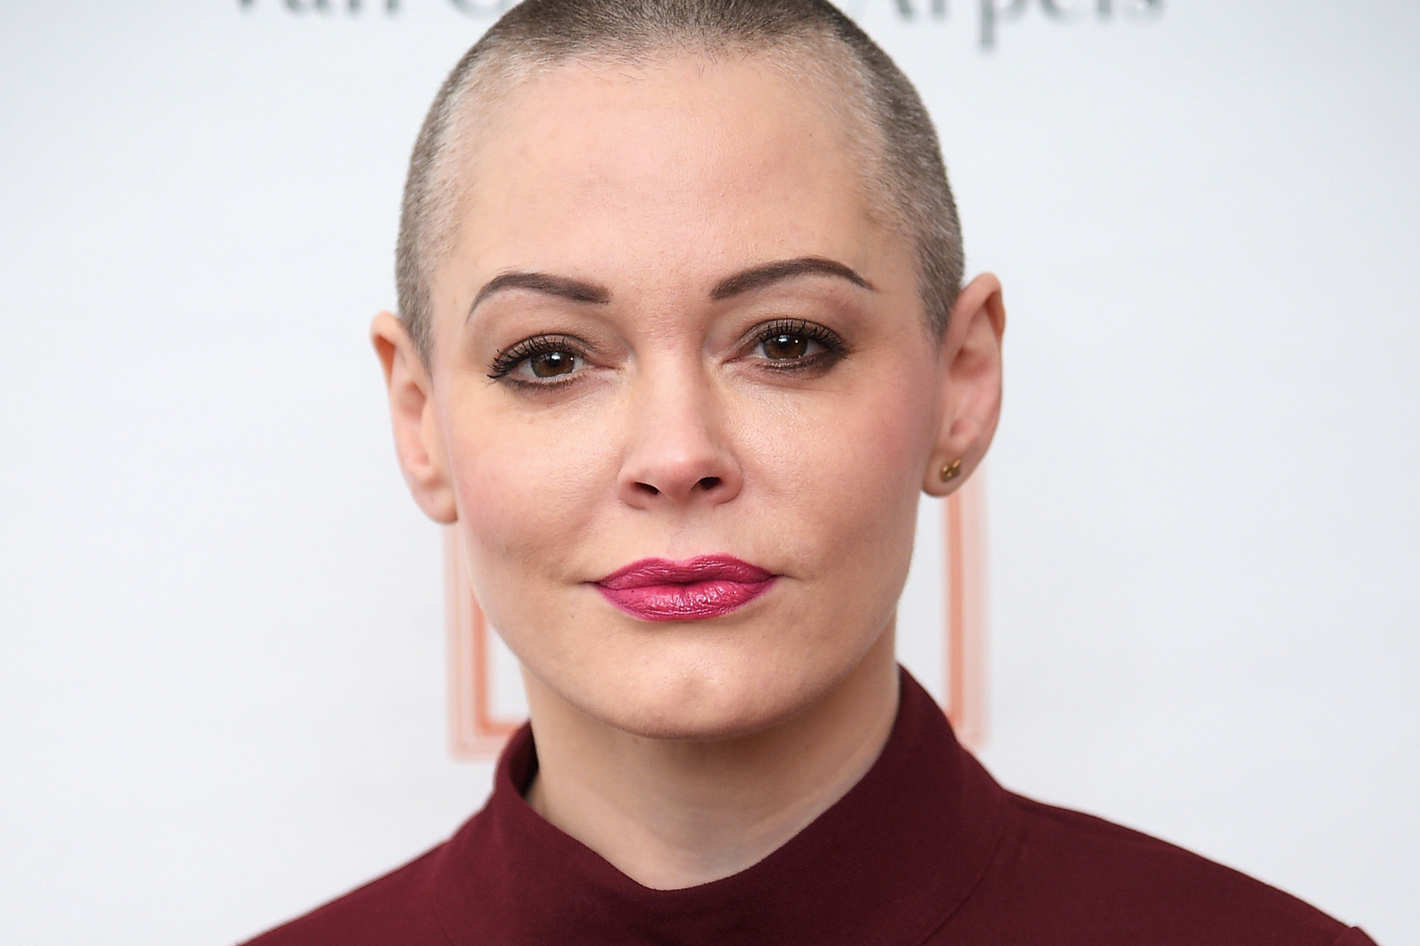 Rose McGowan (Charmed) refuse une somme astronomique pour son silence — Affaire Weinstein